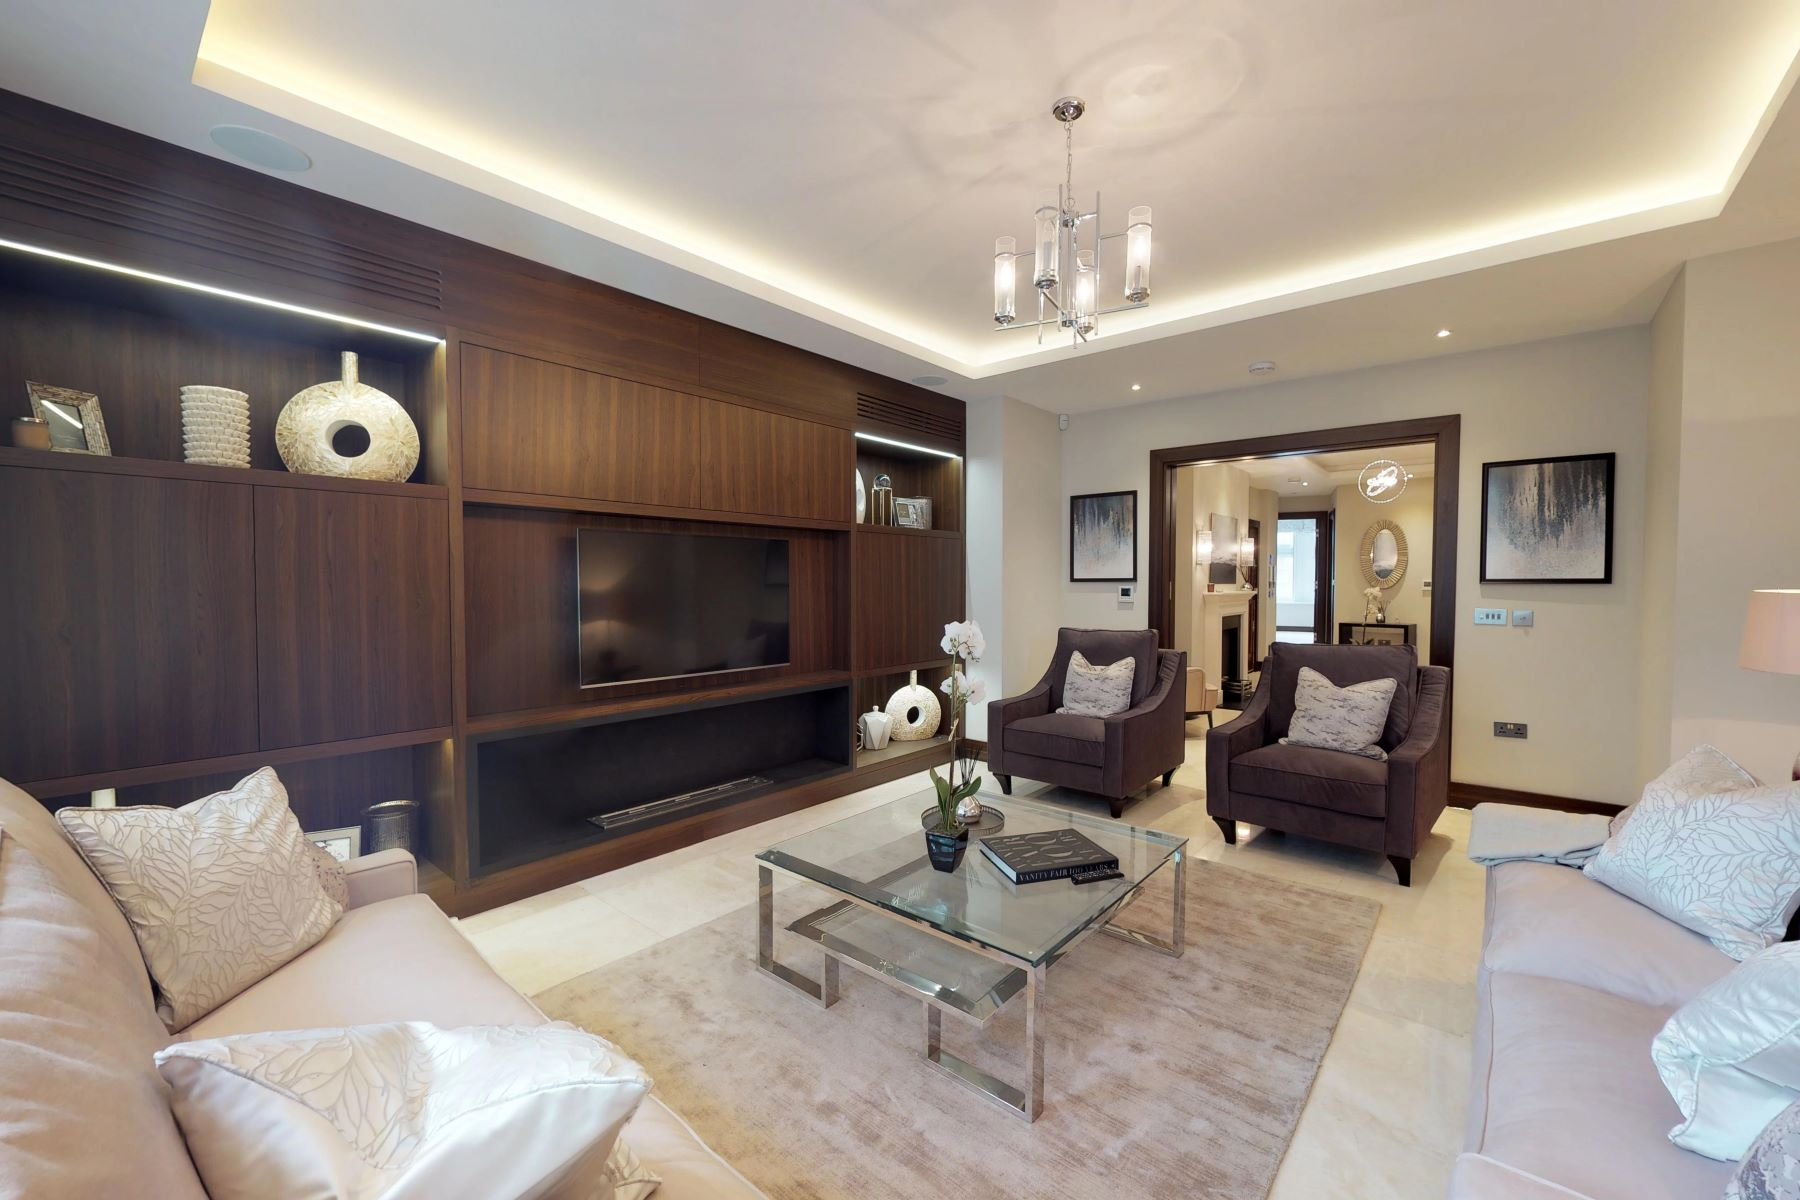 Apartments for Sale at 18 Parkside London, England SW1X 7JW United Kingdom